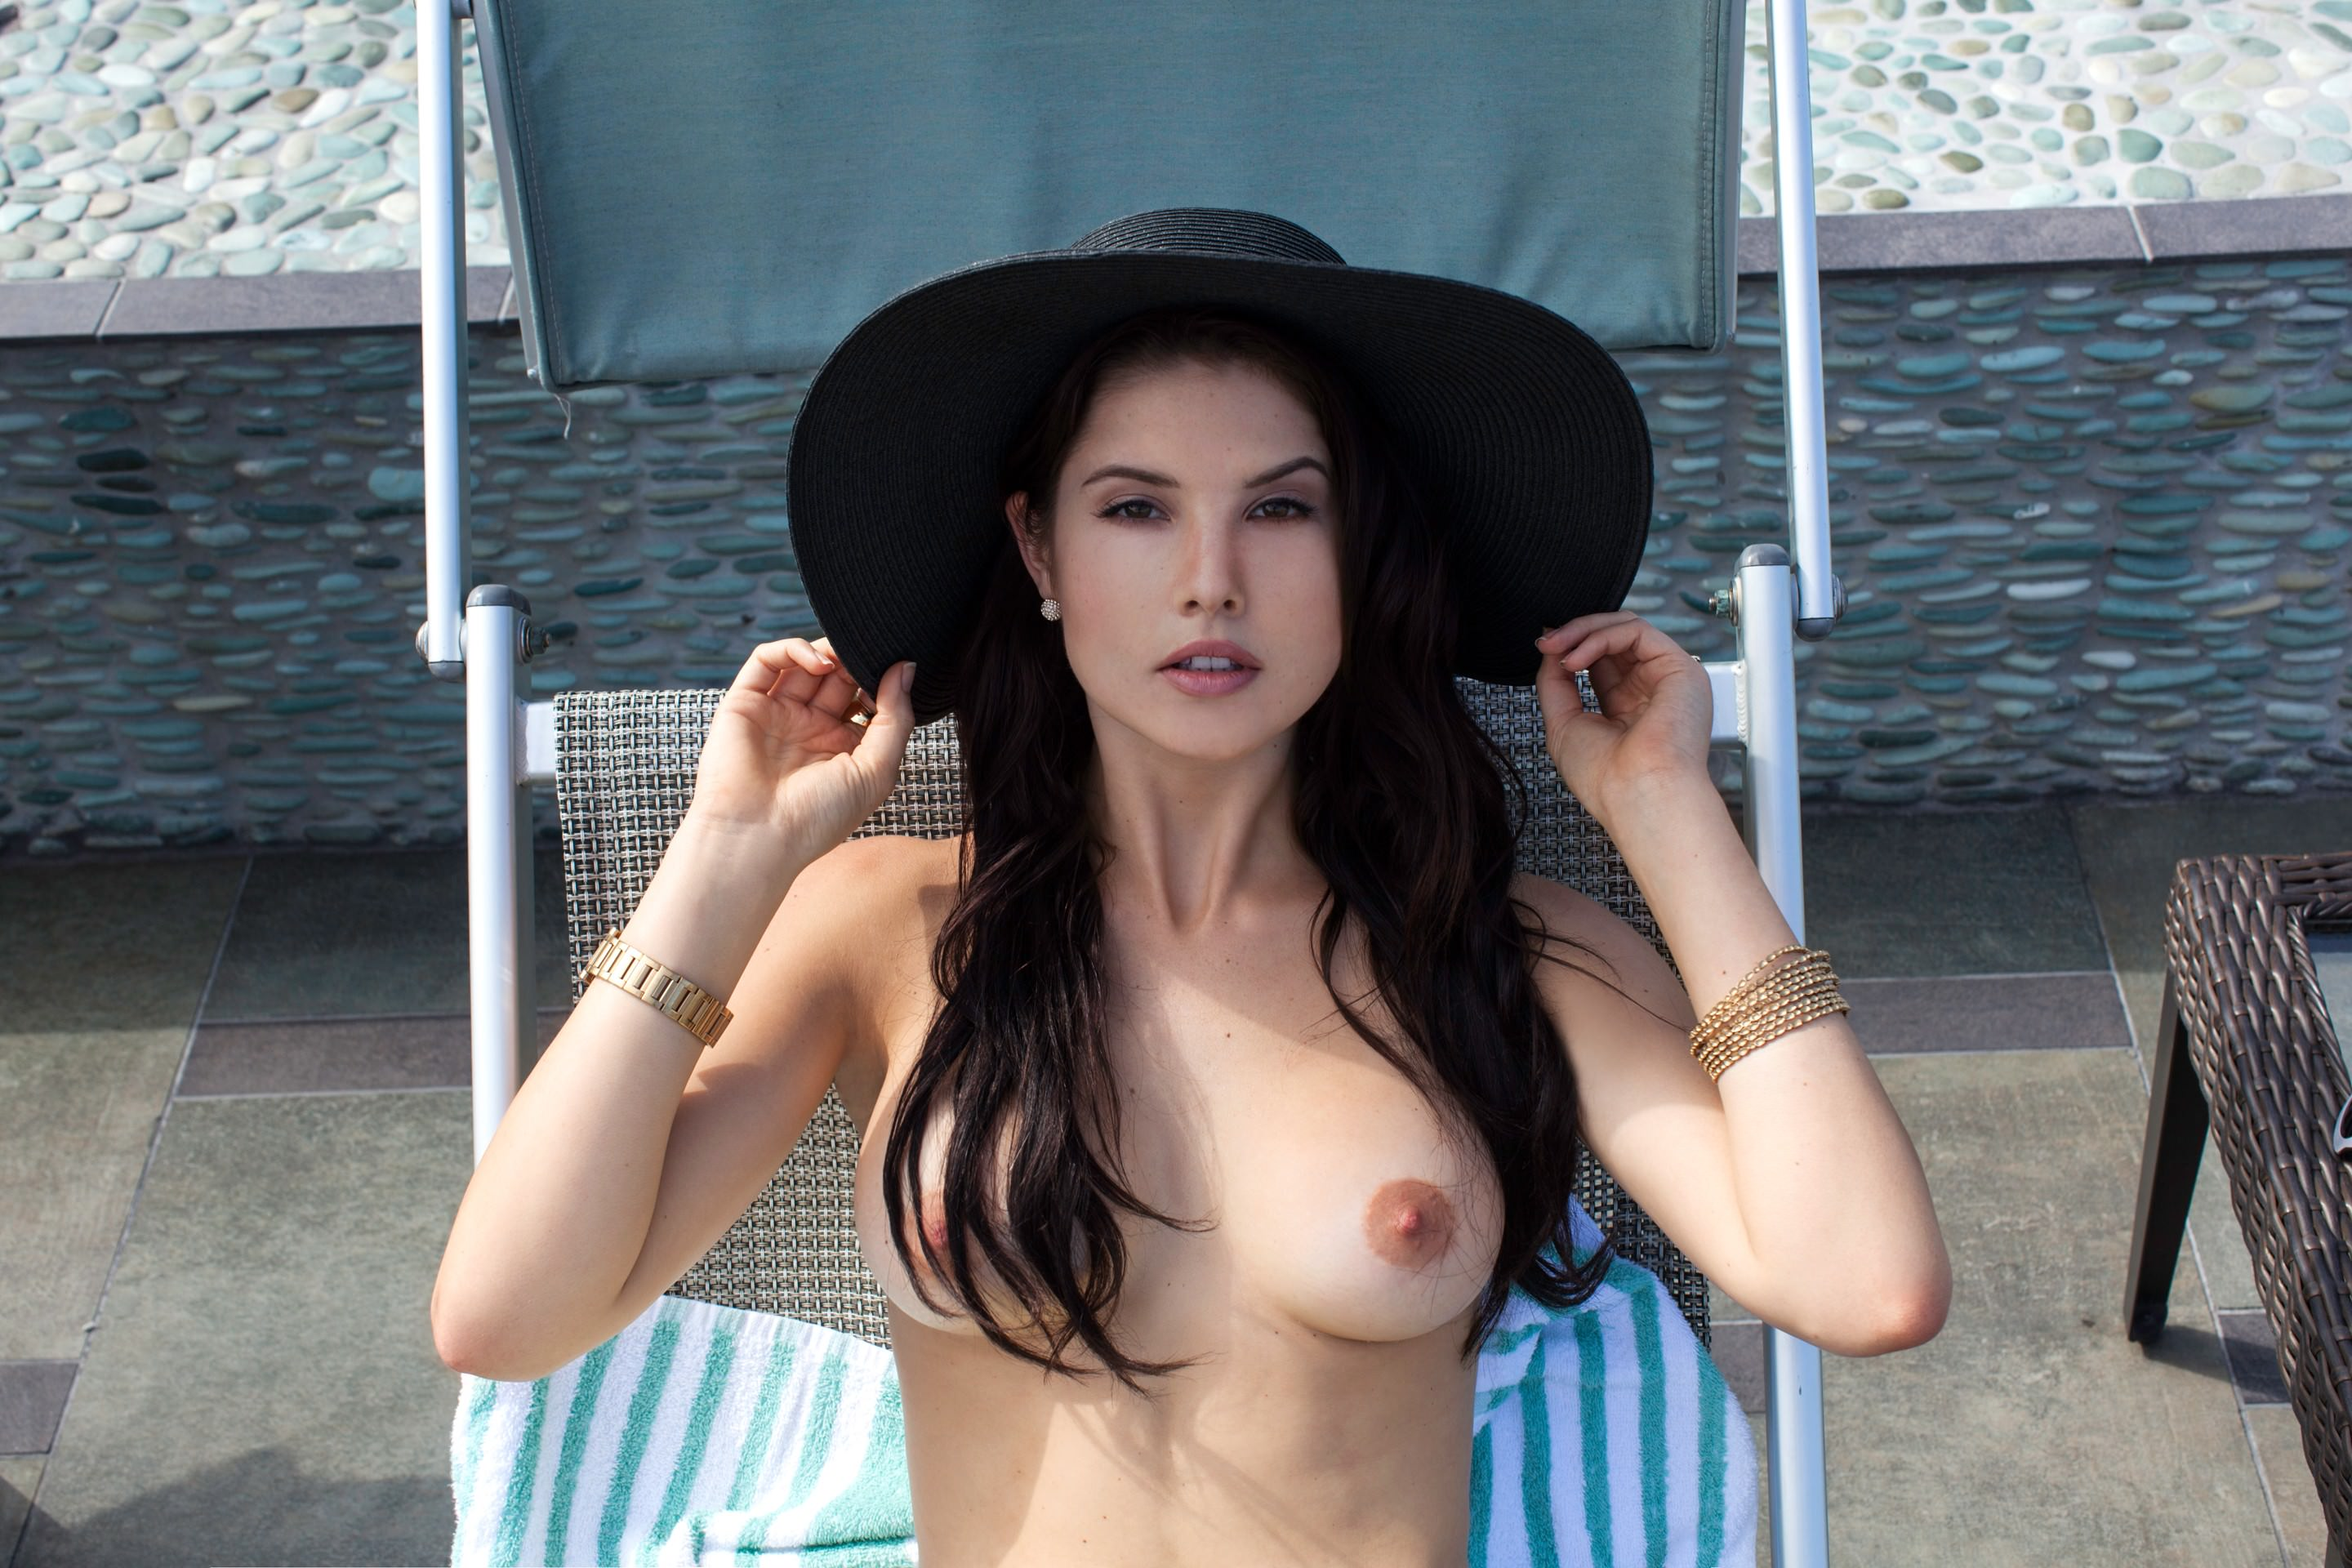 Amanda cerny nude playboy photo shoots - 2019 year